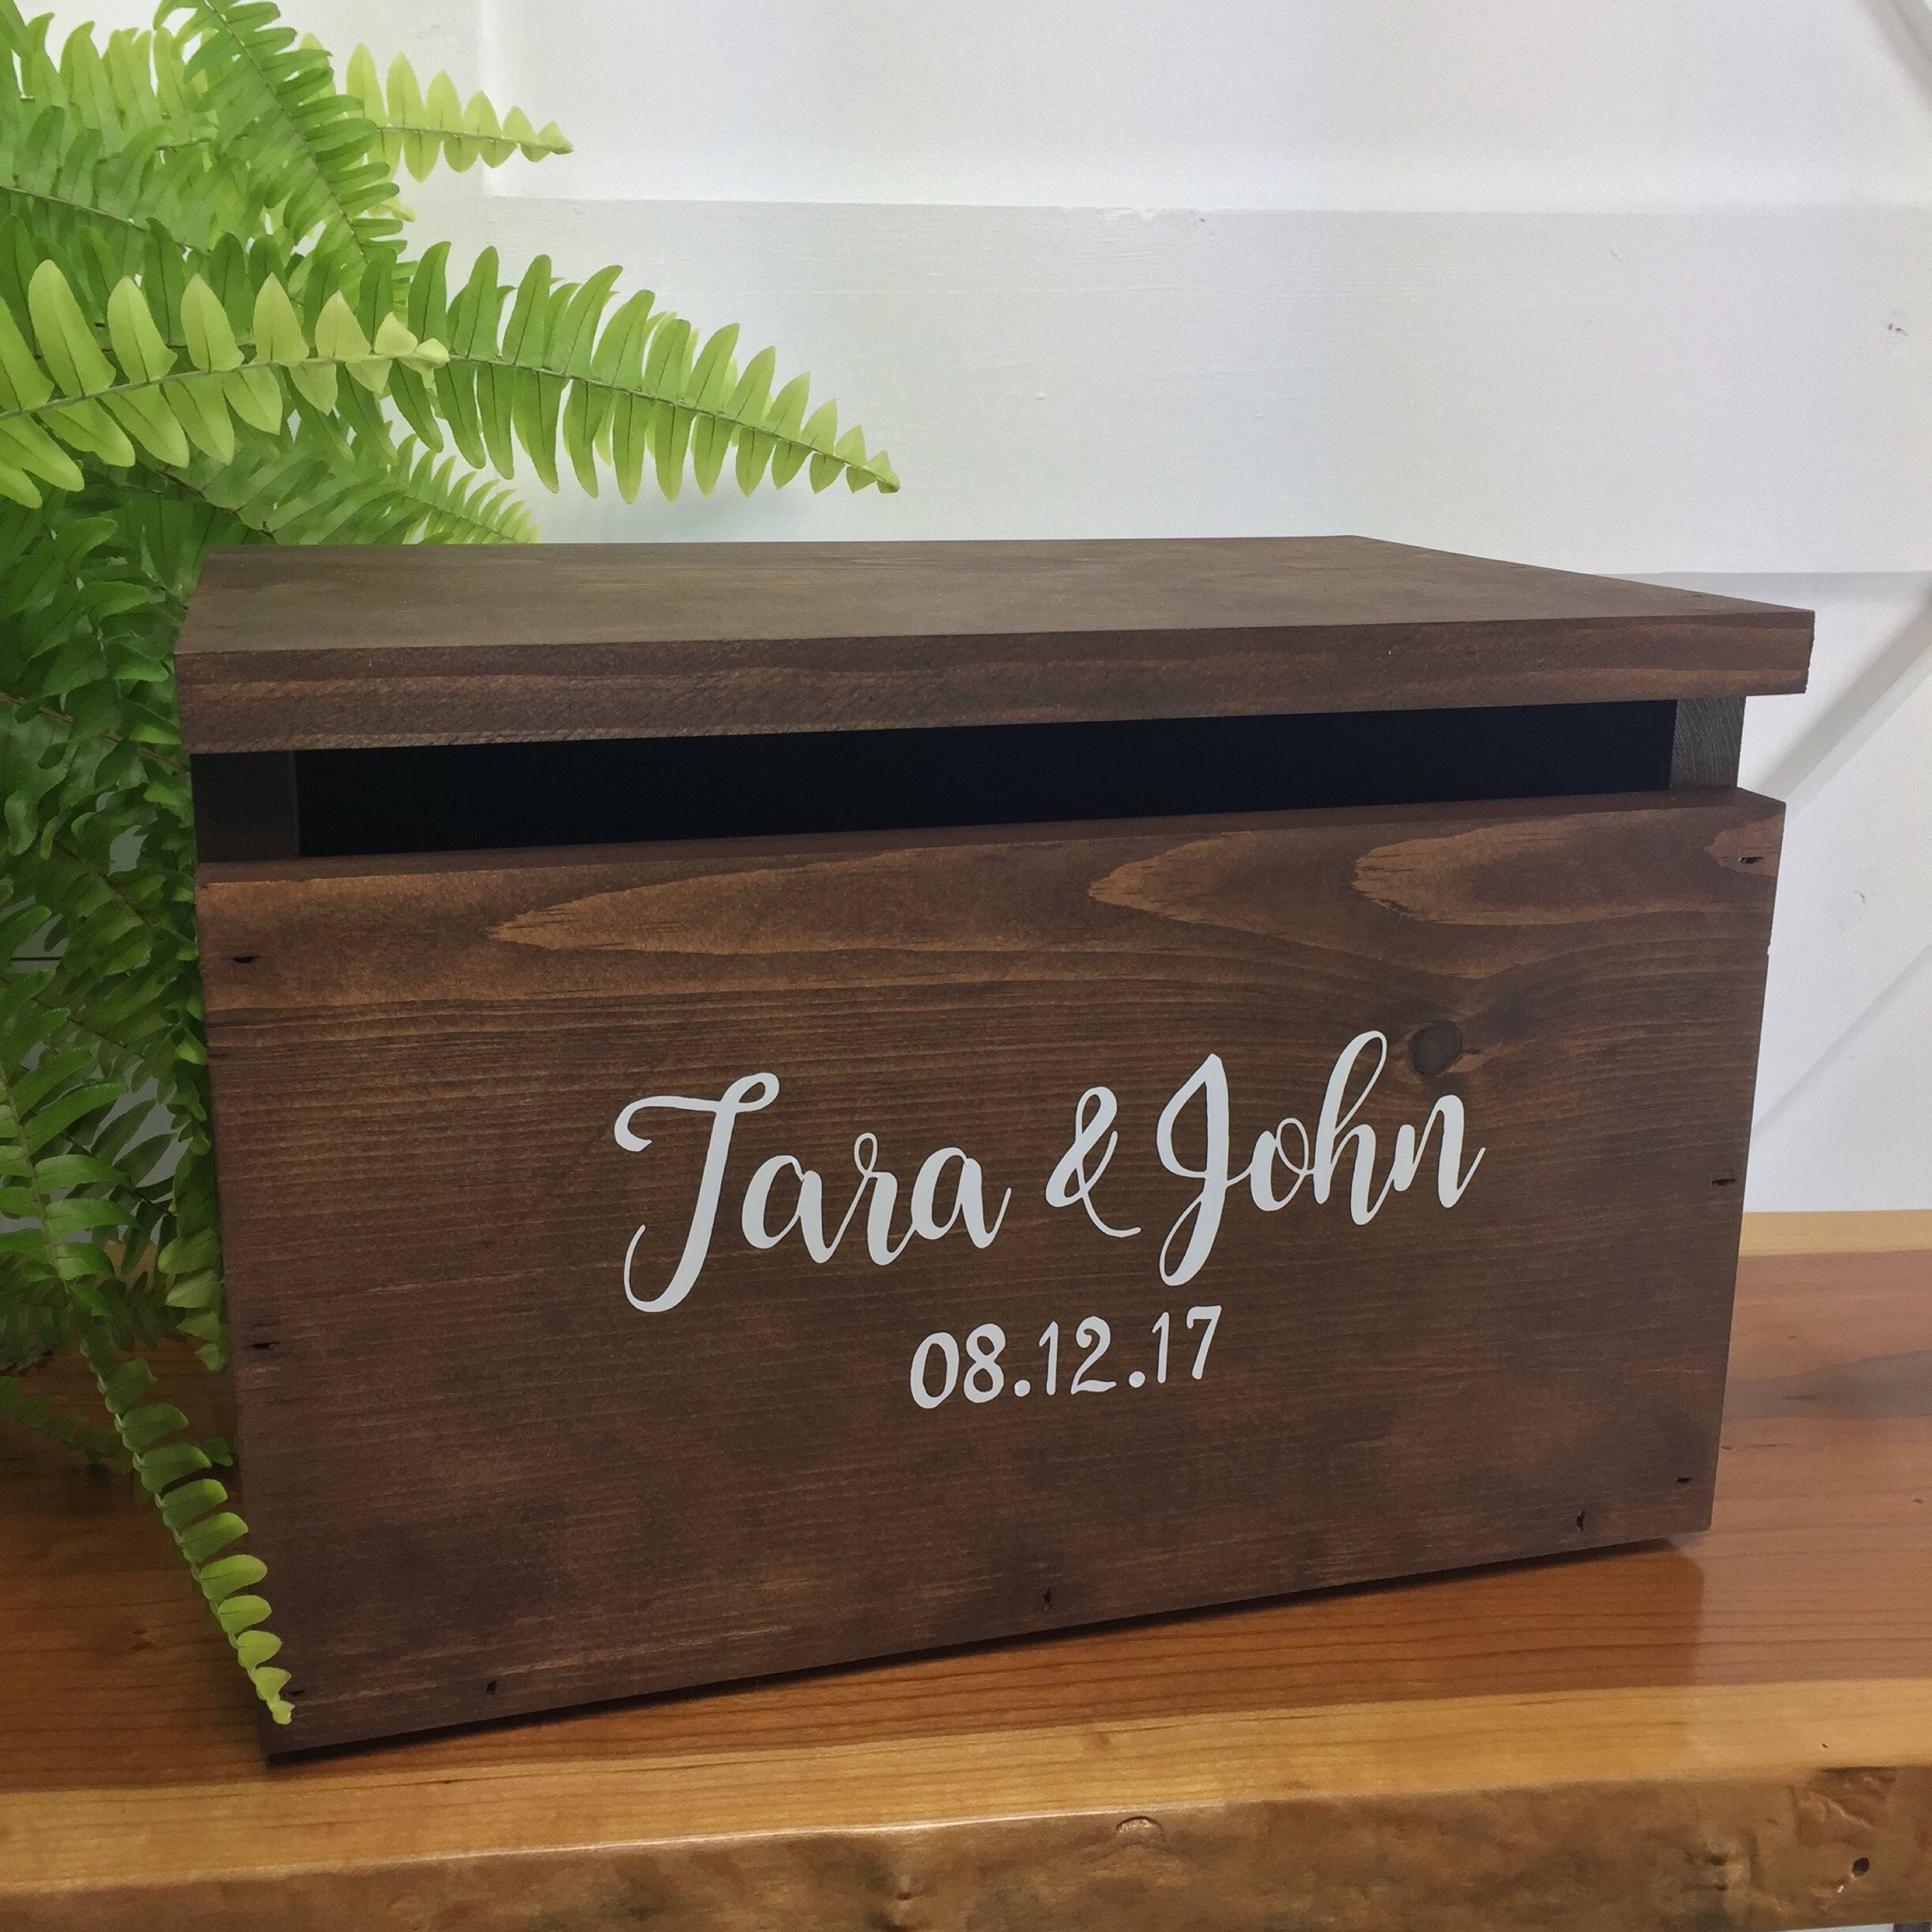 Wedding Card Box Rustic Personalized Wood item by braggingbags |Wooden Chest For Wedding Cards